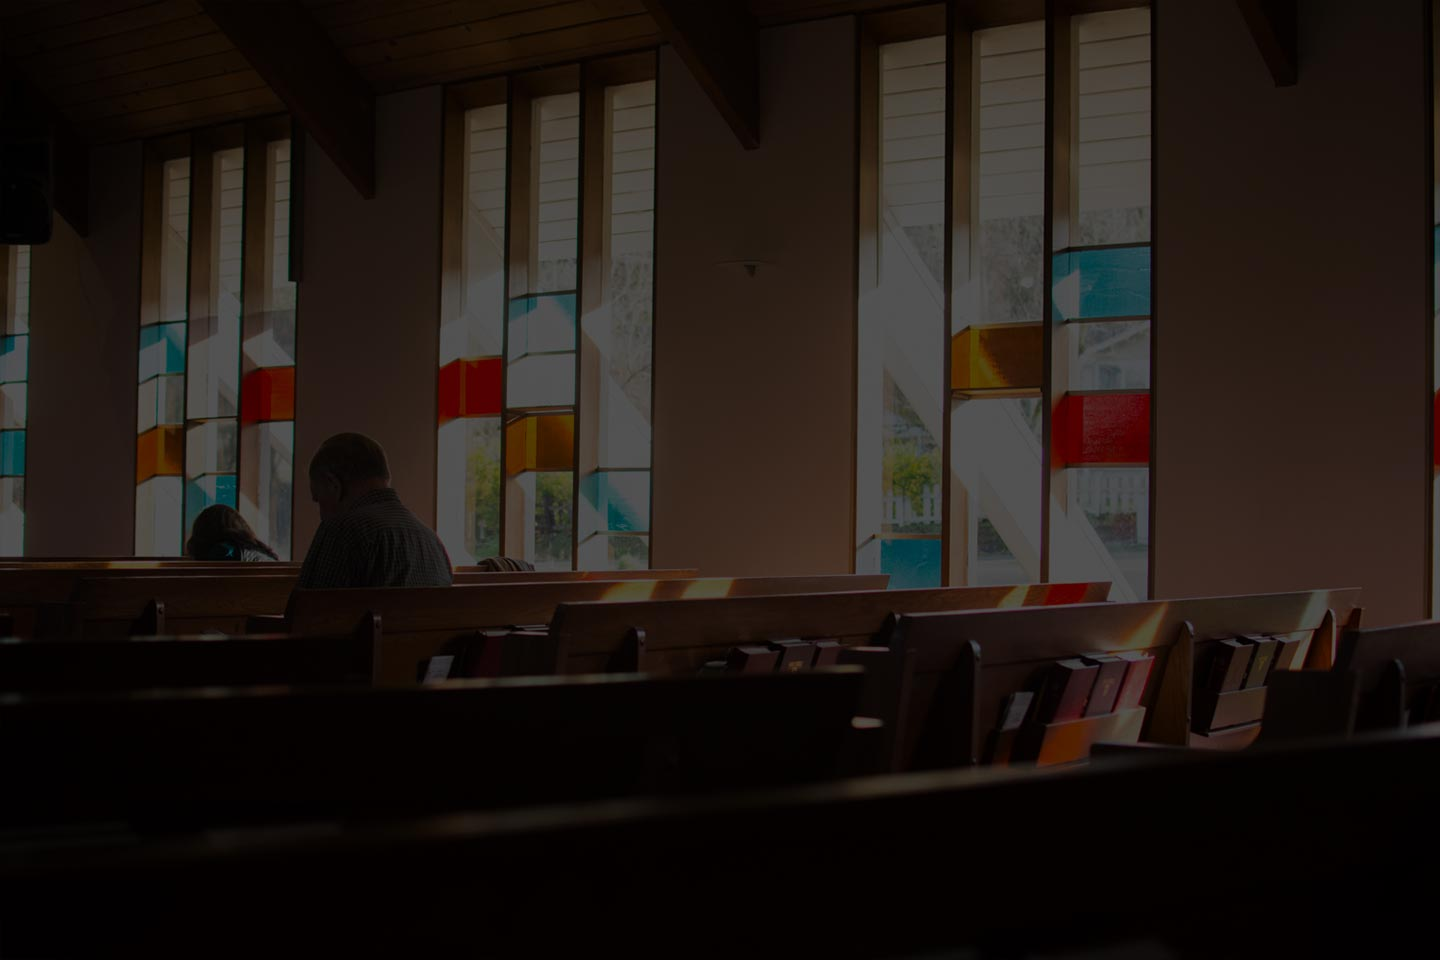 Get in touch with Holy Cross Lutheran Church in Bellevue, WA